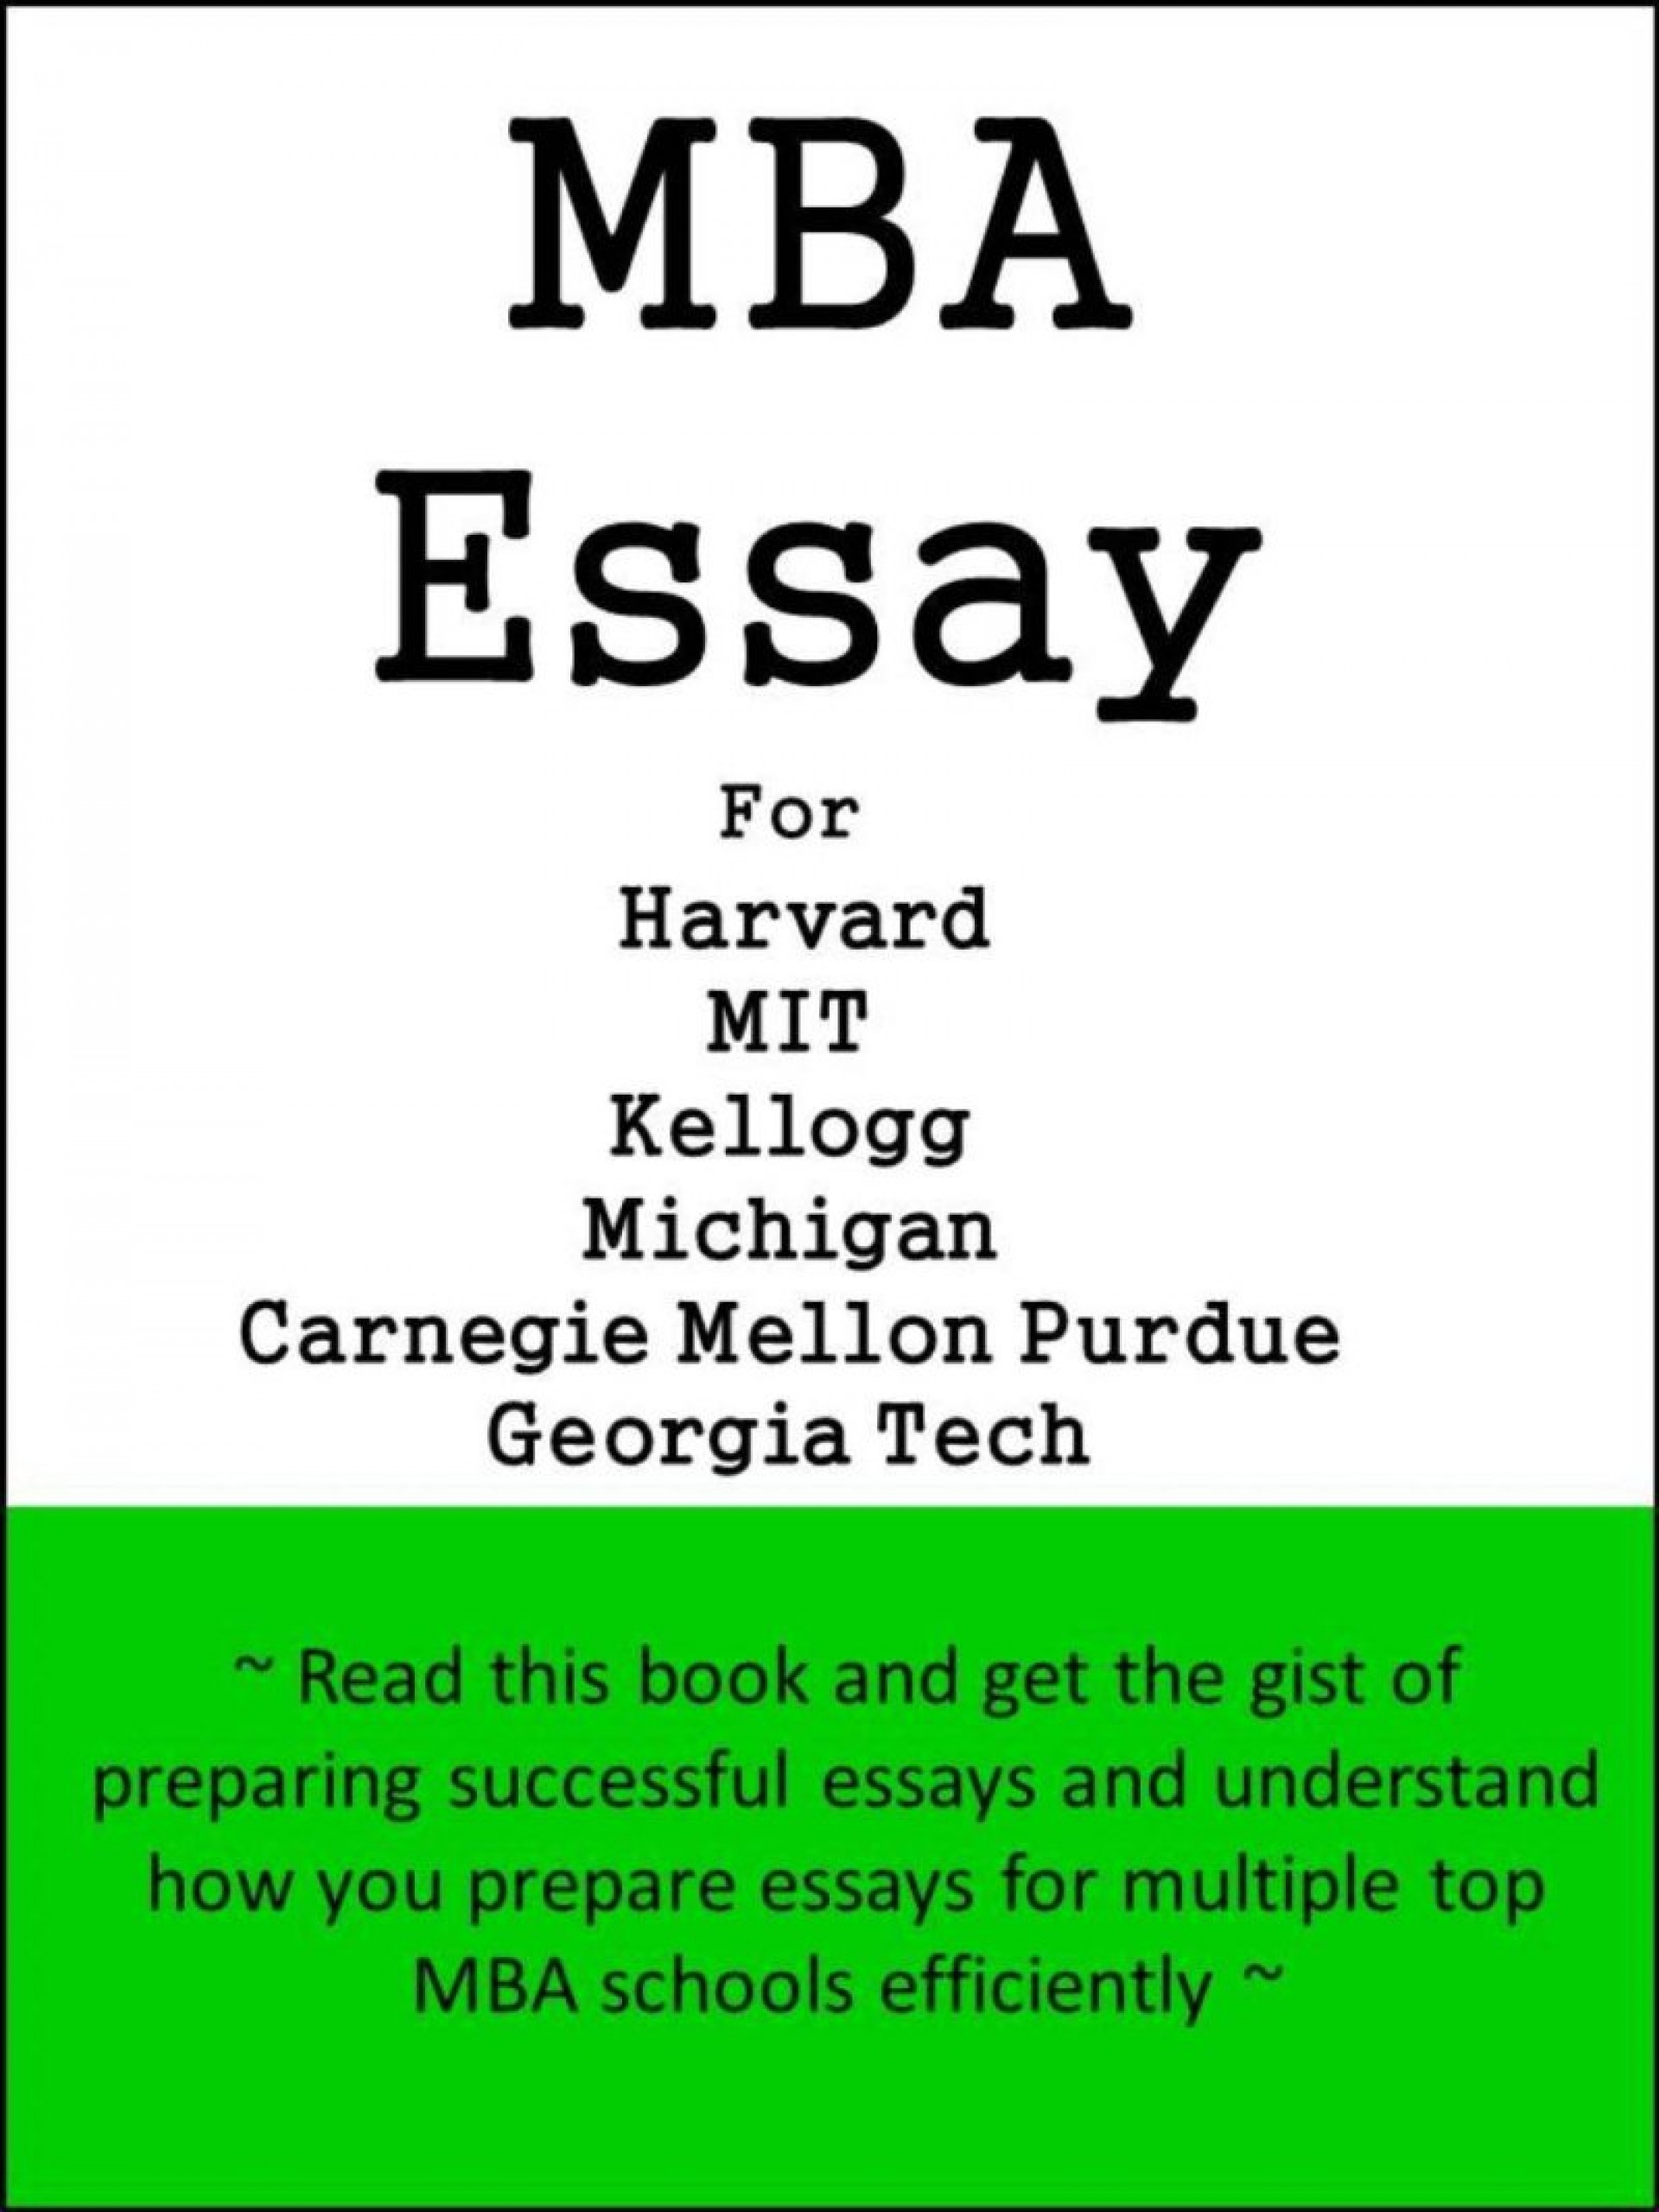 007 Kellogg Mba Essays Poemsrom Co For Harvard Mit Michigan Carnegie Mellon Purdue Georgia Tech 205 Questions Imposing Essay Samples Ga 1920